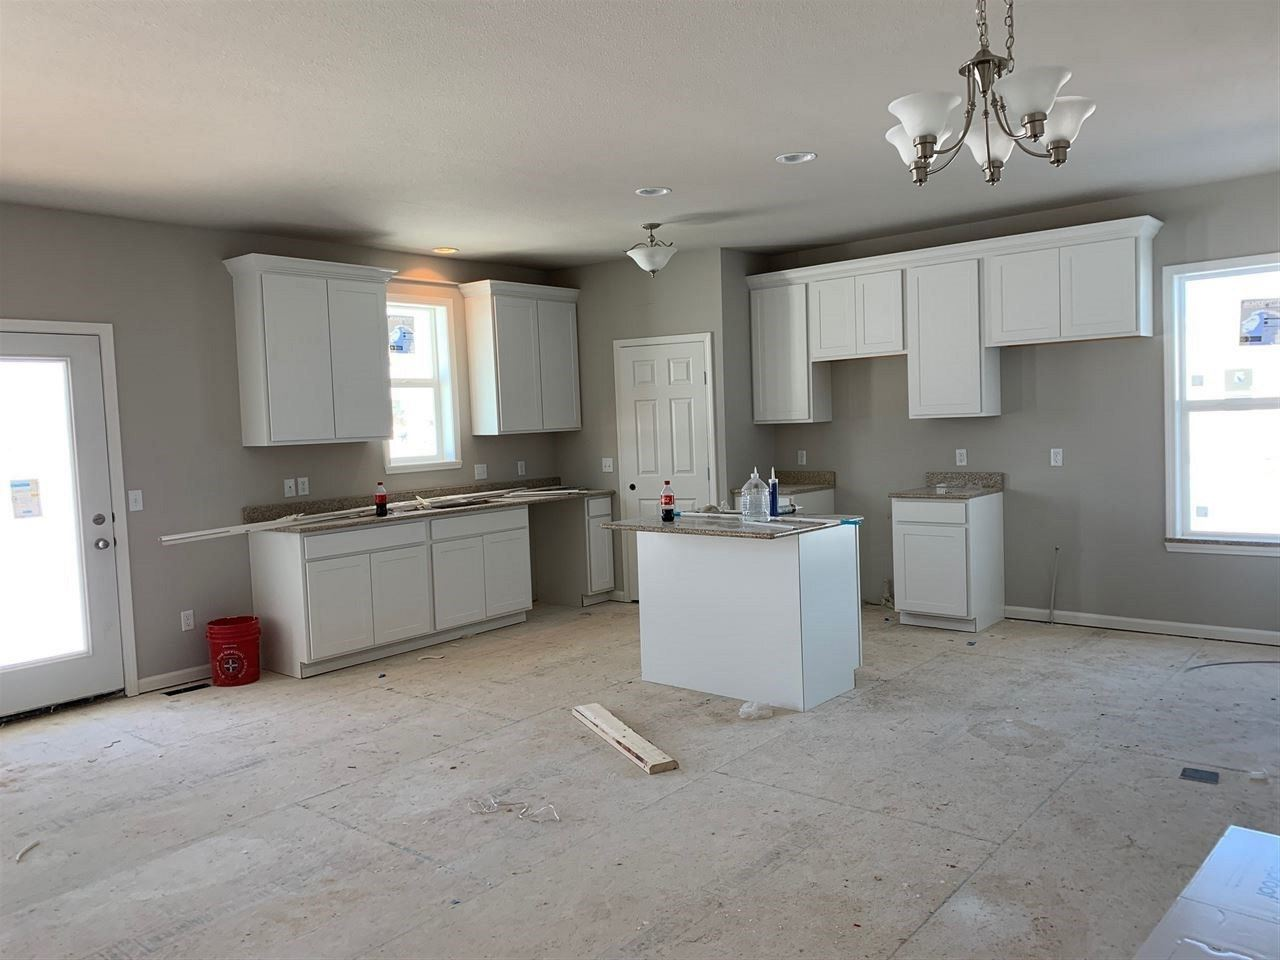 f_1906134_02 Our Listings at Best Realty of Edgerton